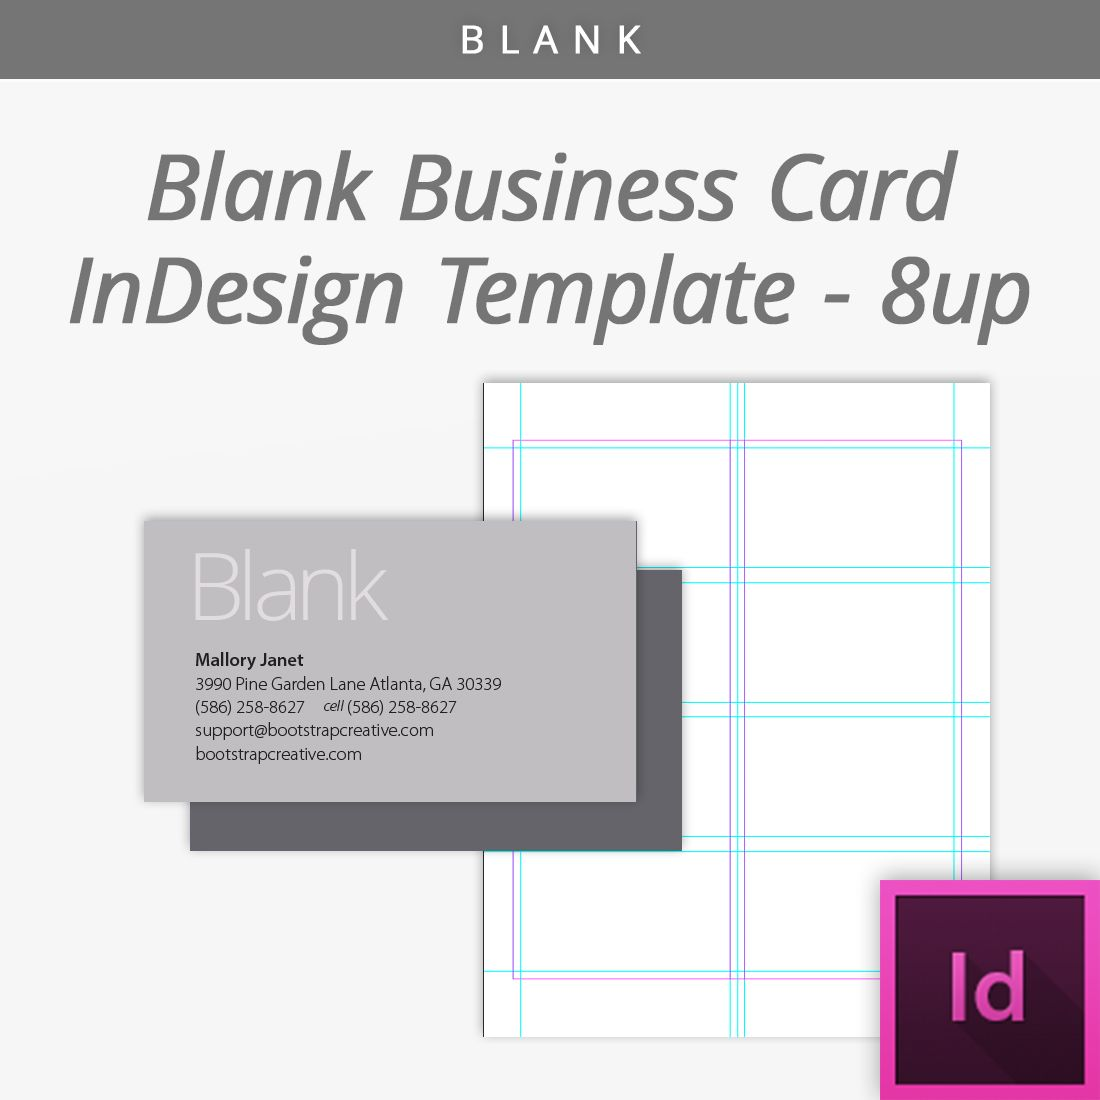 Blank indesign business card template 8 up free download for Adobe photoshop business card template